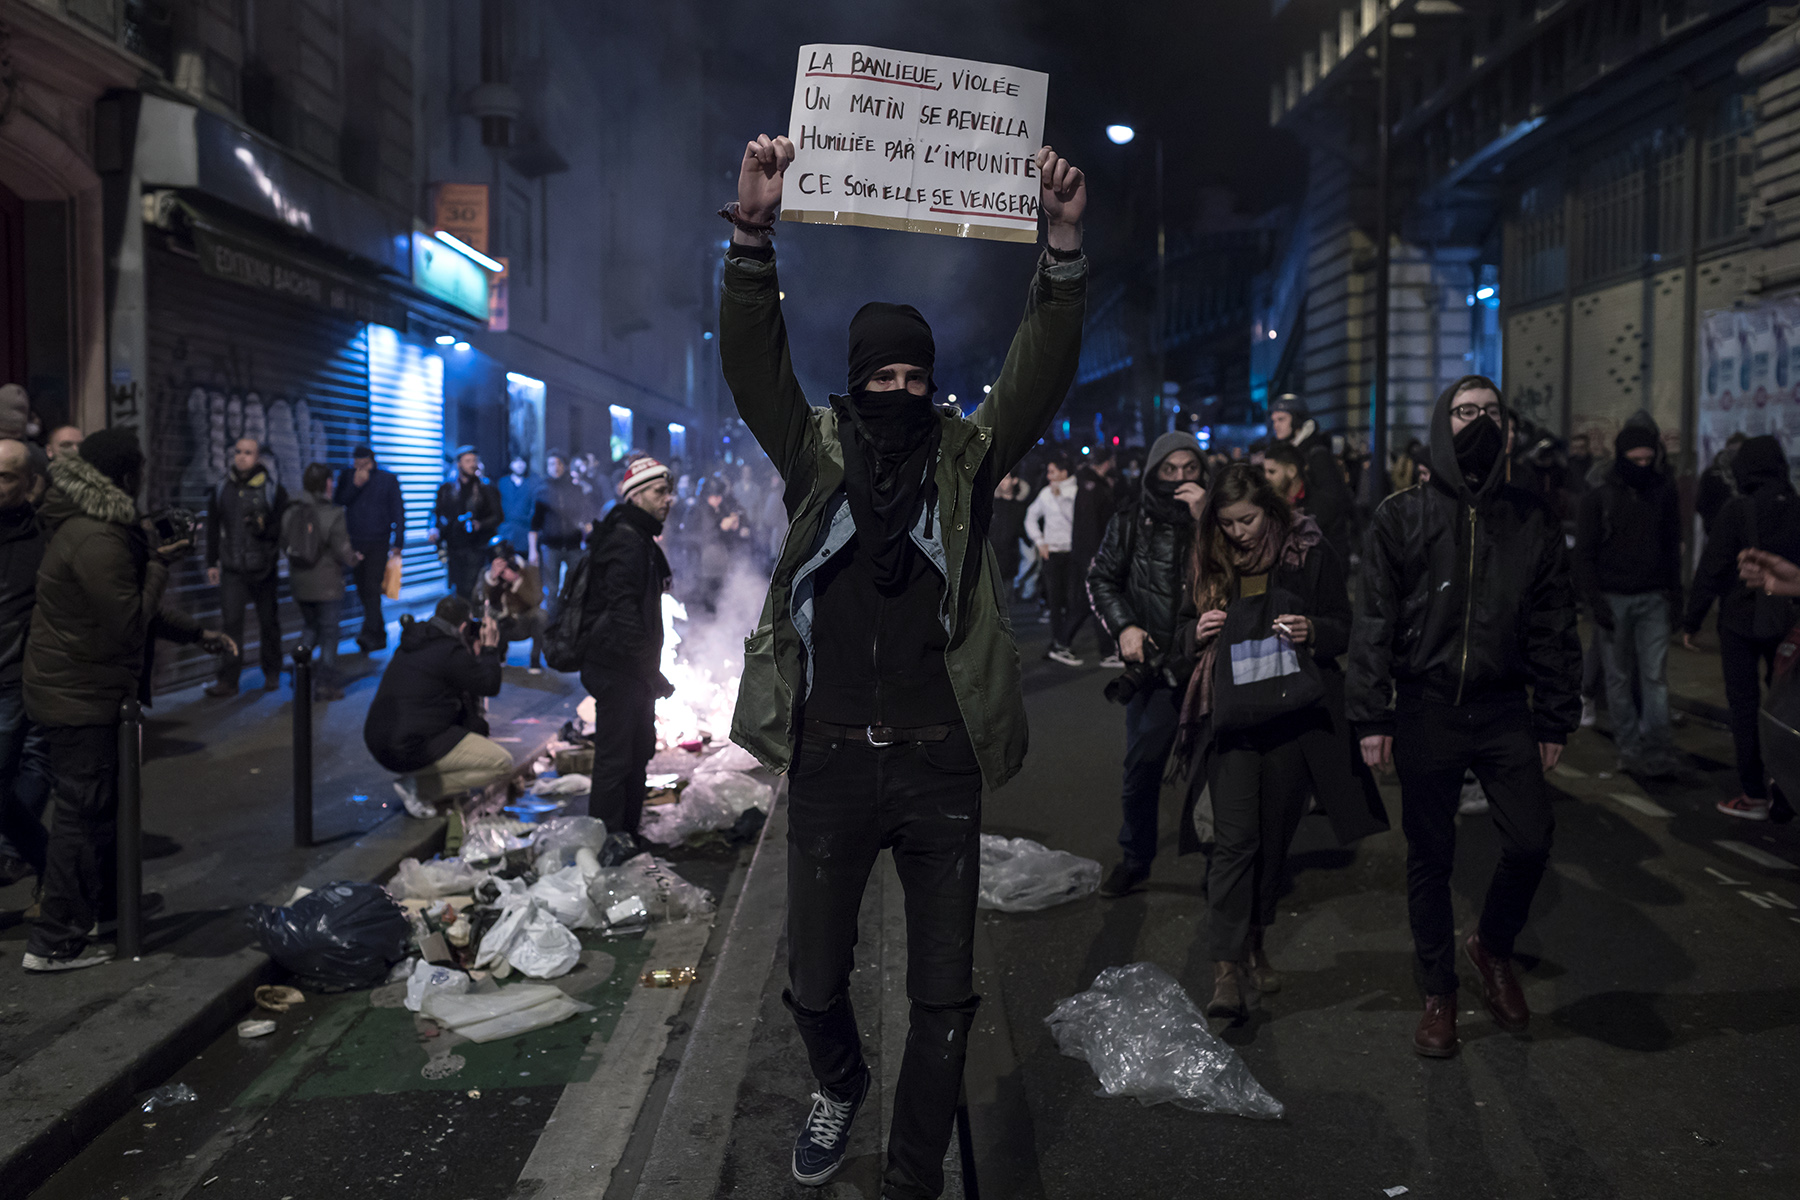 A young man holds up a sign reading {quote}The raped suburb woke up one day humiliated by impunity. Tonight it will take revenge.{quote} at Barbes station in Paris, France on Feb. 15, 2017.